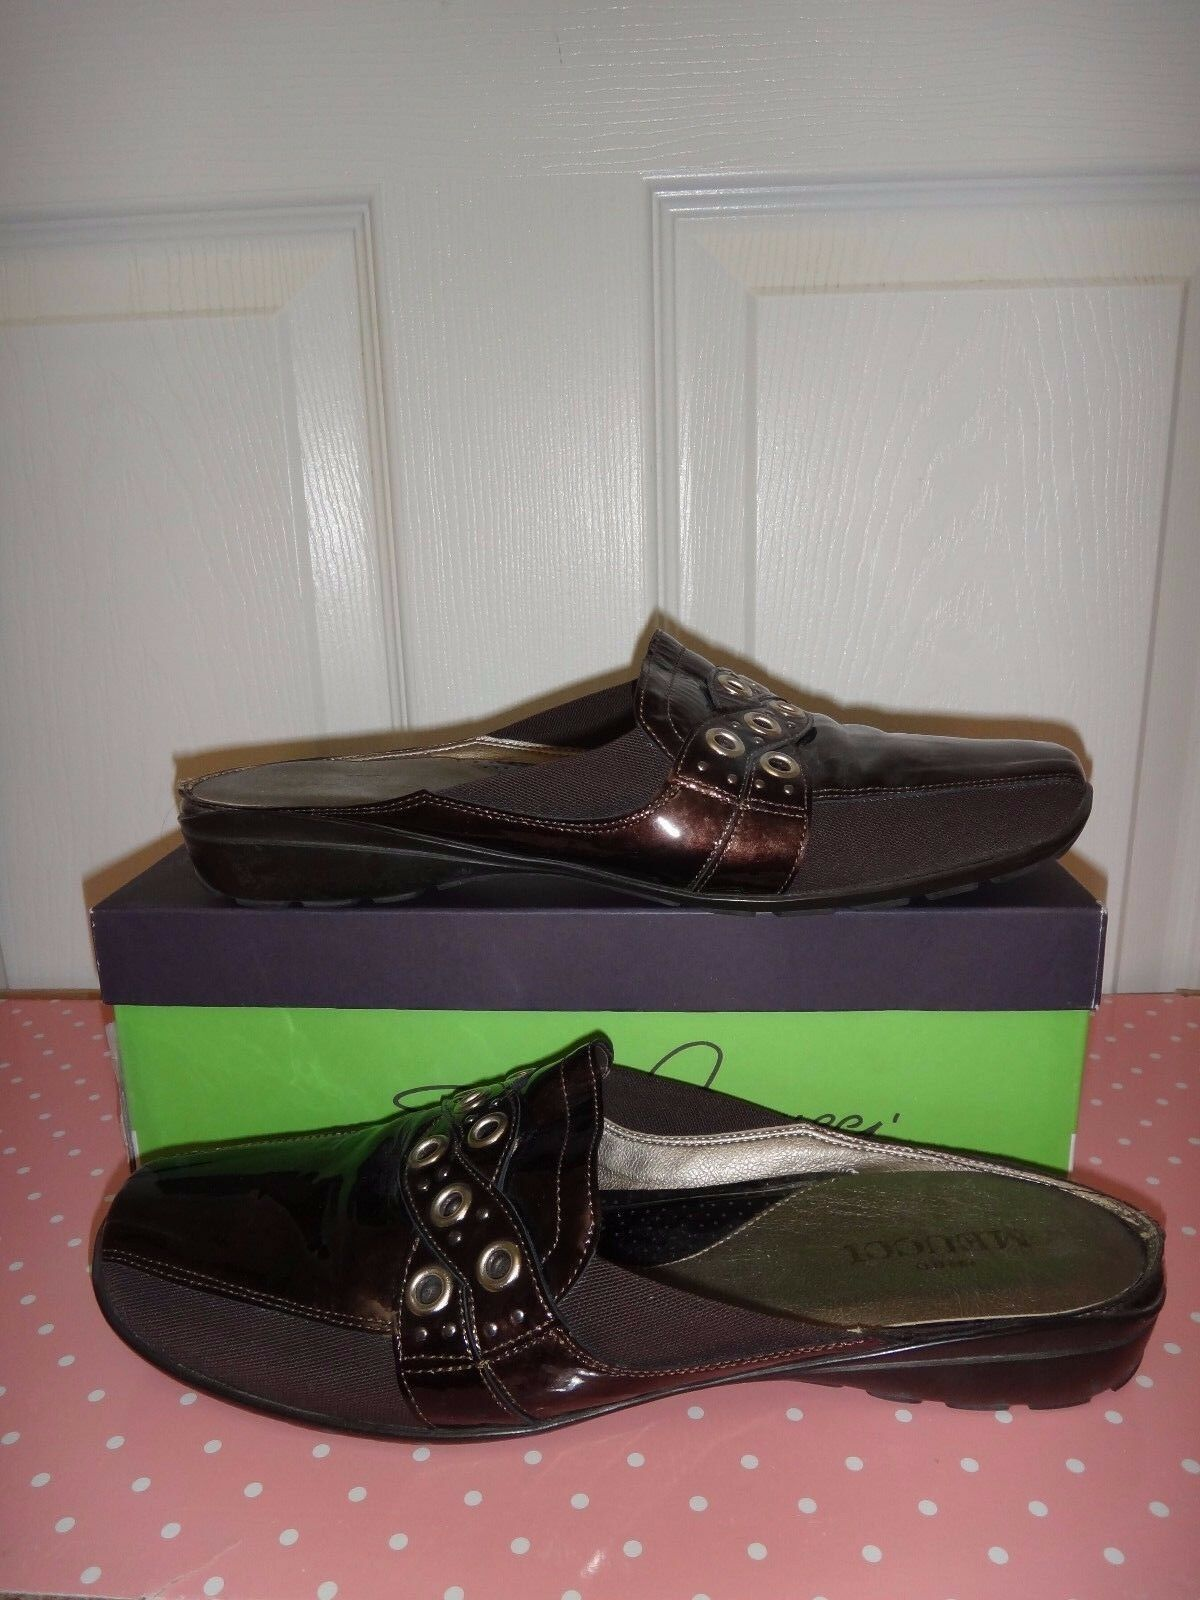 SESTO MEUCCI Womens Flats Flats Flats Mules Brown Patent Leather Textile MADE IN ITALY Sz 10 c4d1c7